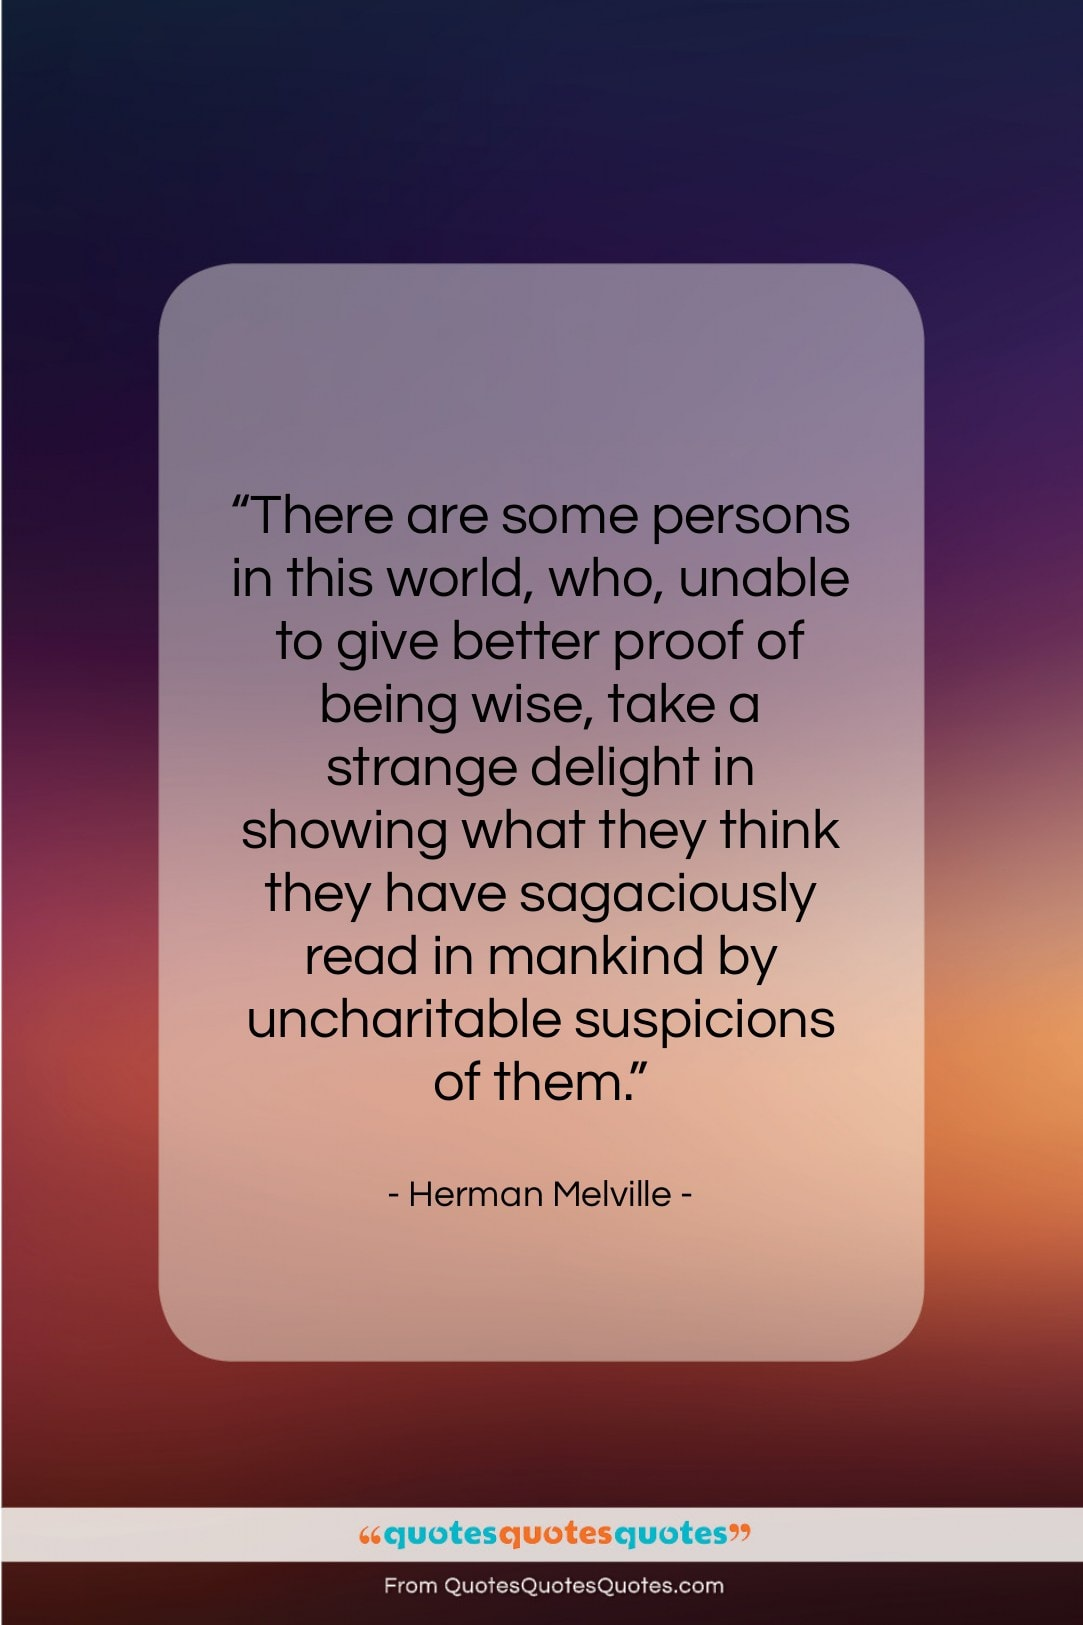 """Herman Melville quote: """"There are some persons in this world,…""""- at QuotesQuotesQuotes.com"""